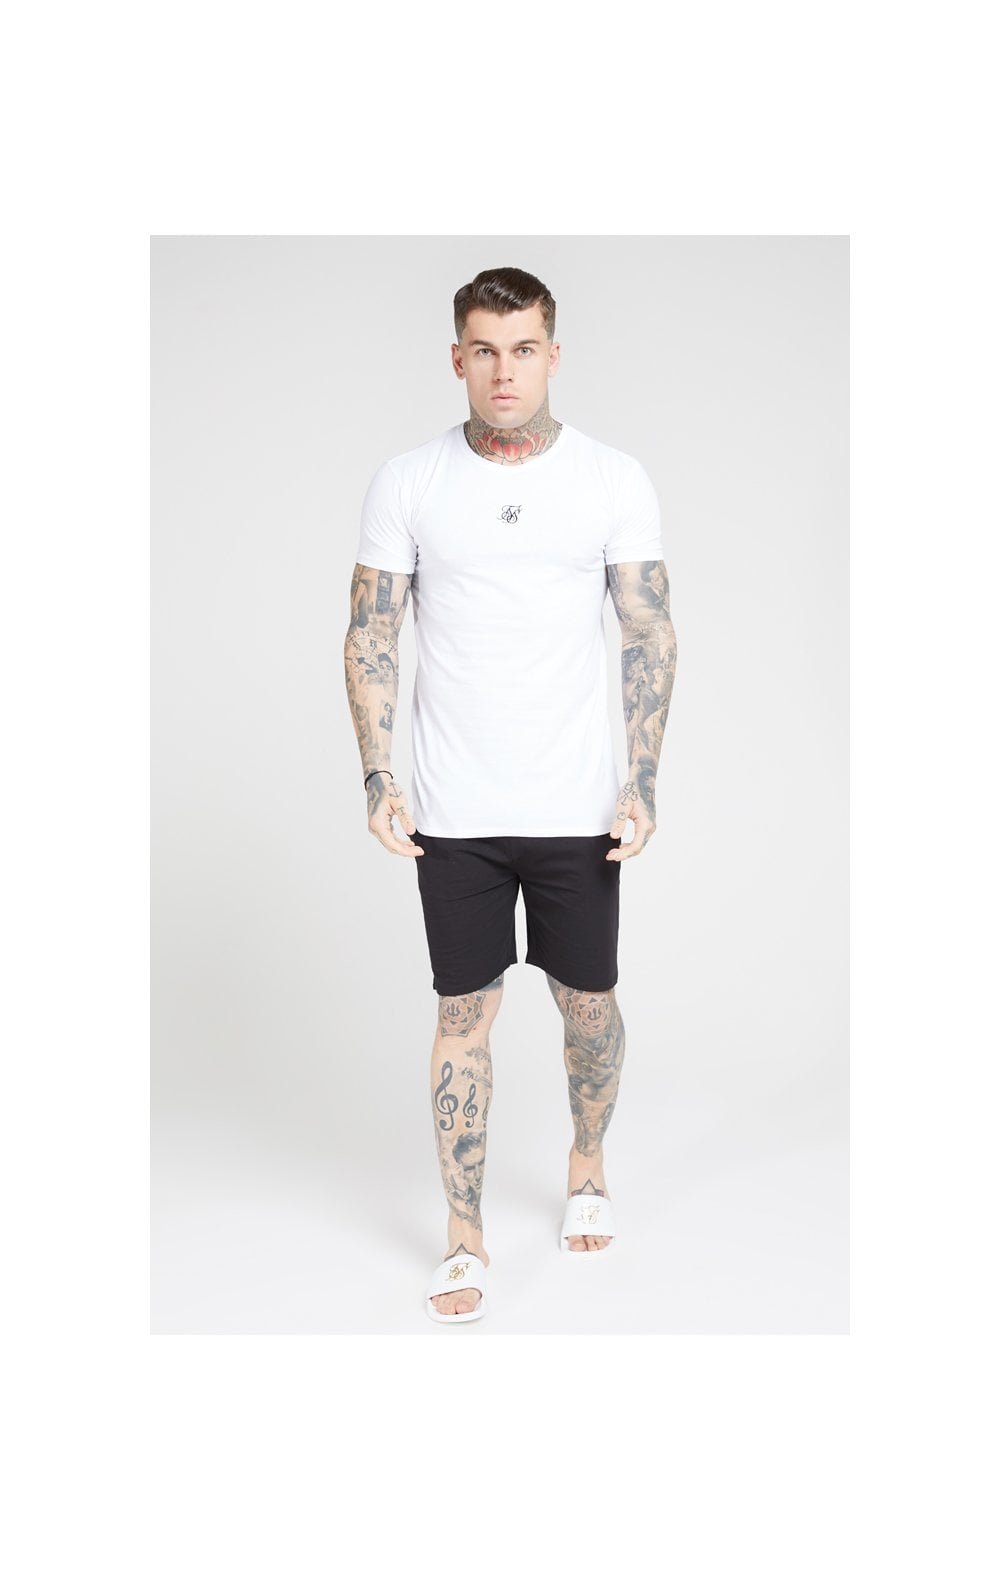 SikSilk Lounge Tee - White & Navy (2 Pack) - 1 White Tee & 1 Navy Tee (5)